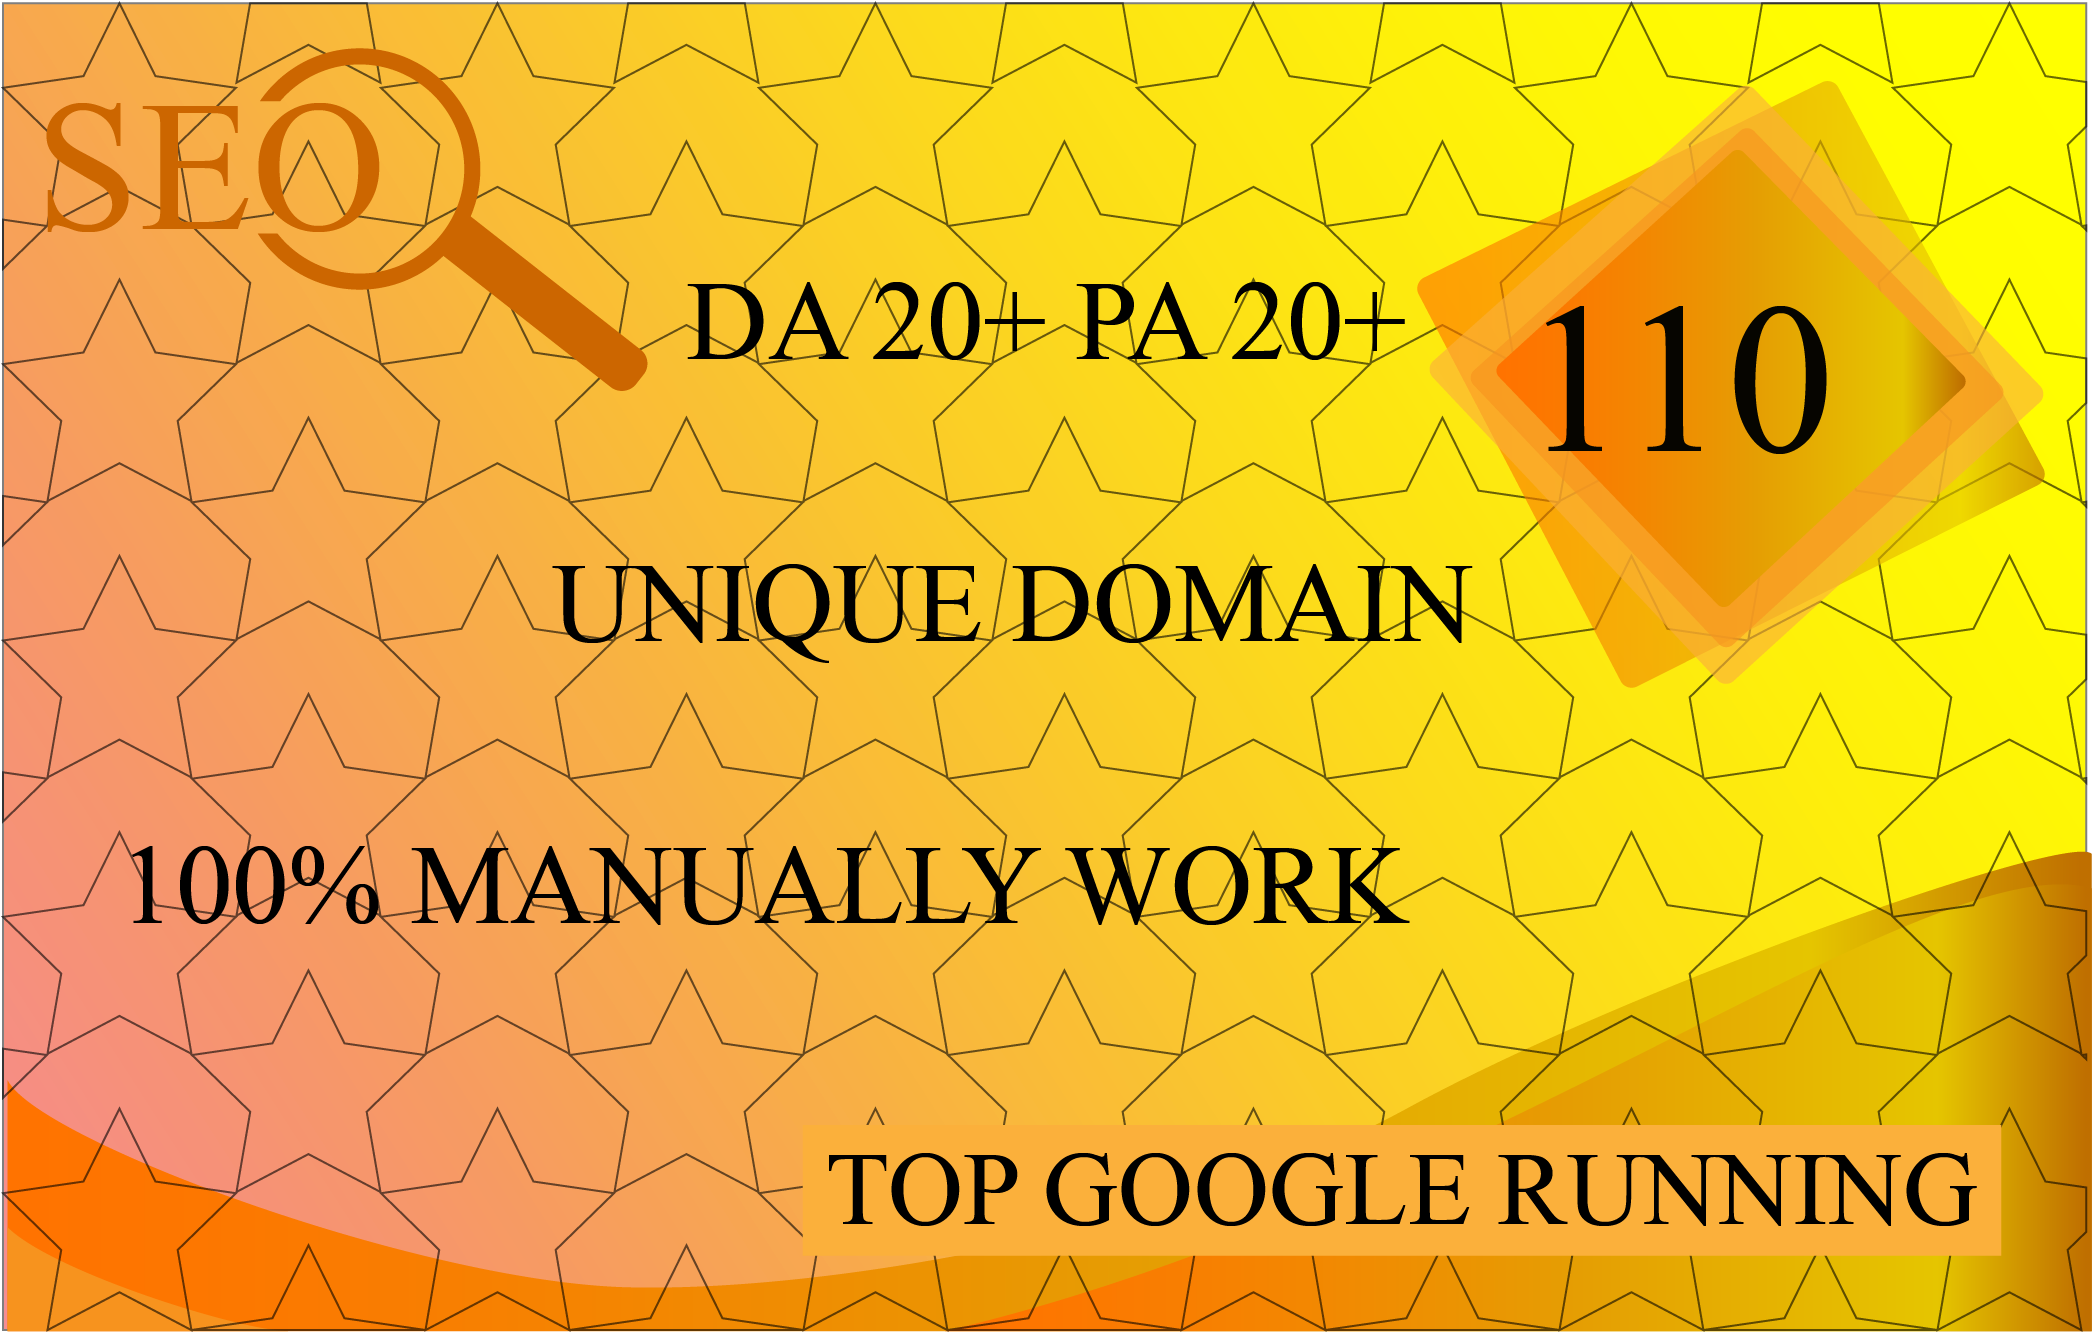 I Will 110 Unique Domains Manual Blog Comments Backlinks Da,Pa,